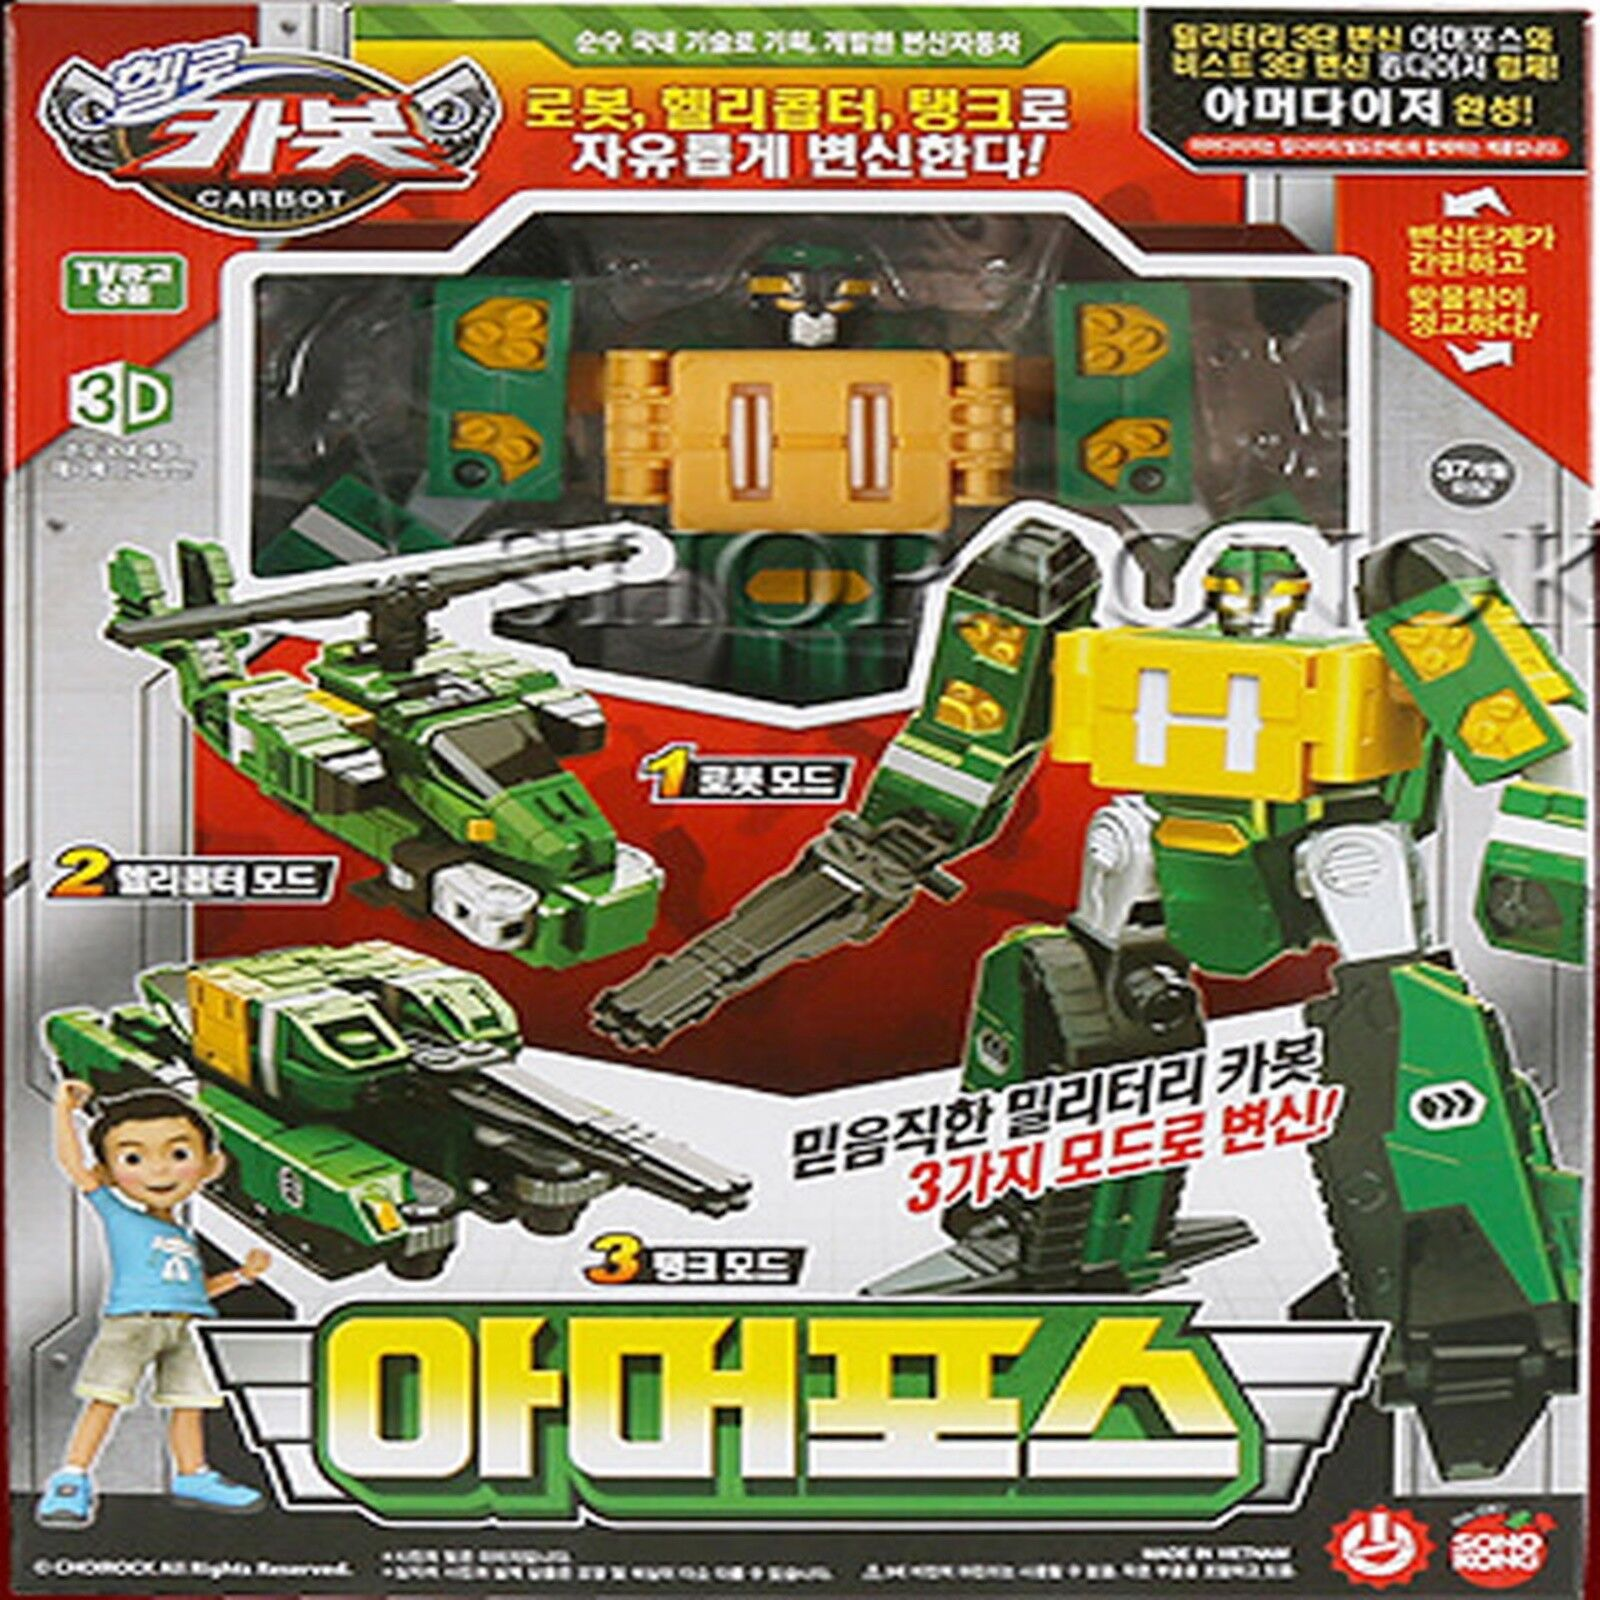 Hello Carbot ARMOR FORCE Army Transformer Robot Tank Helicopter Toy Armorforce